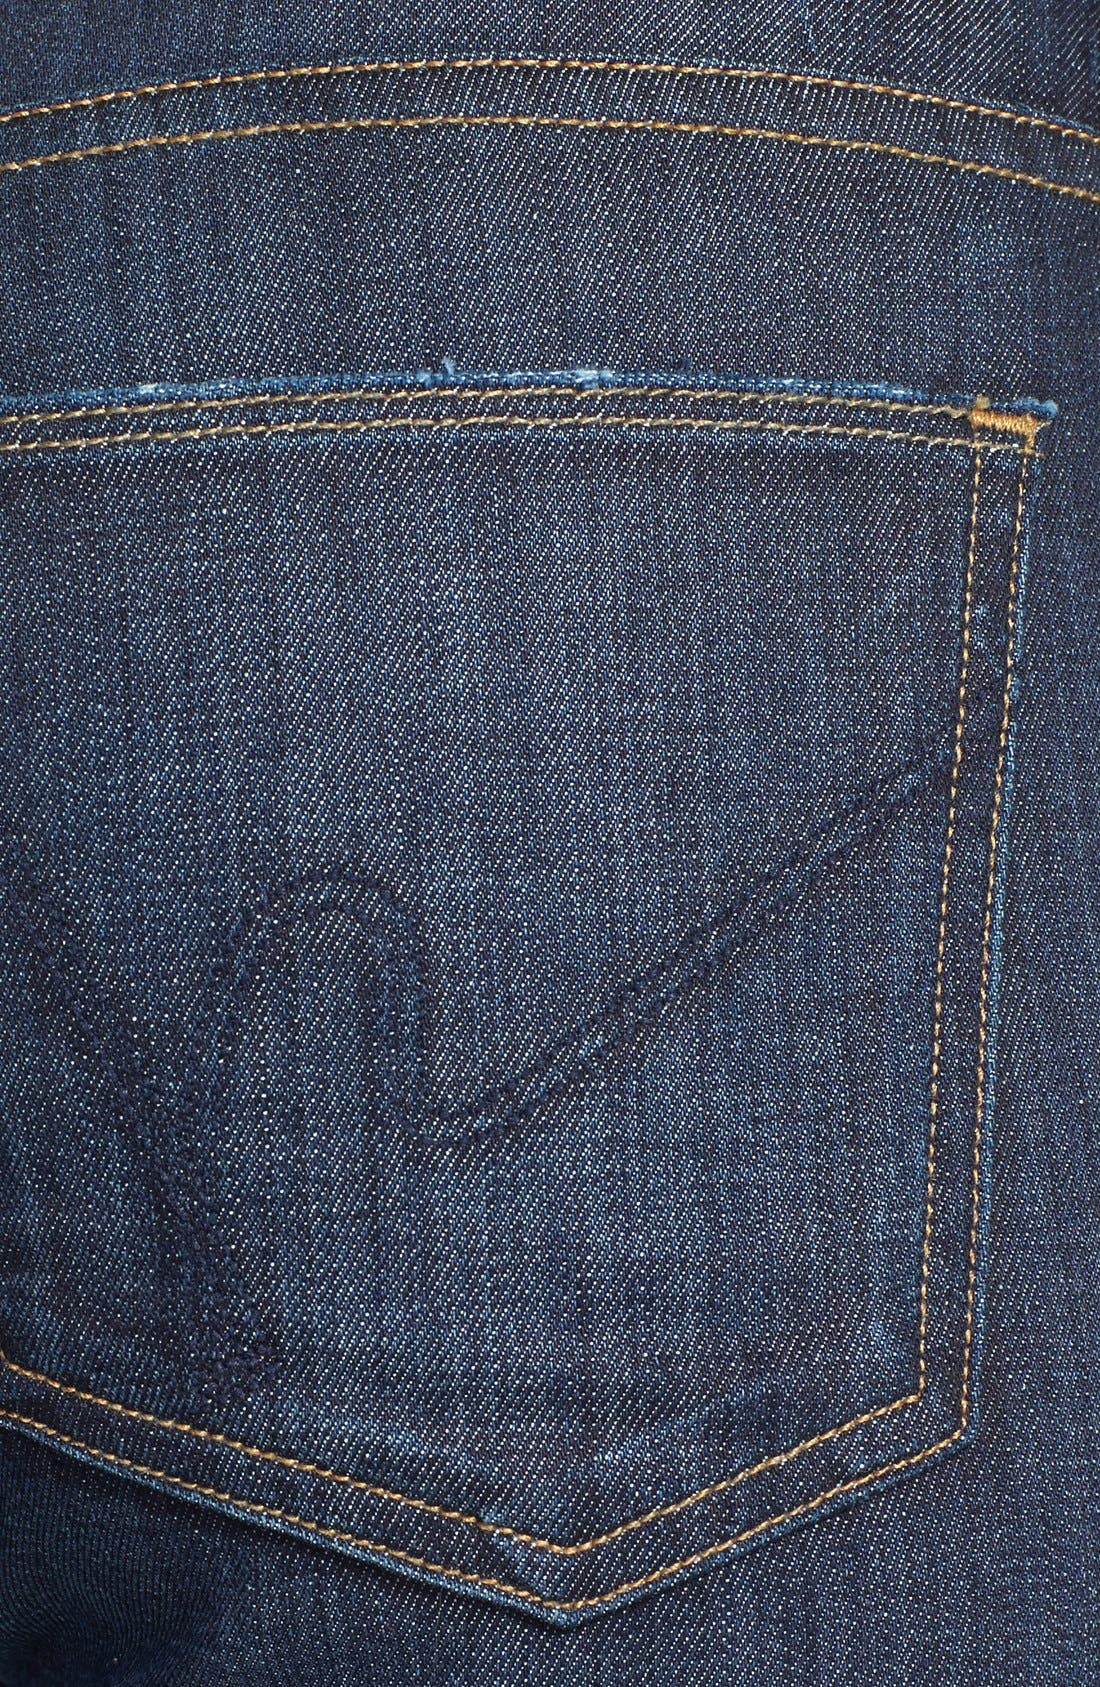 Alternate Image 3  - Citizens of Humanity 'Kelly' Bootcut Stretch Jeans (New Pacific)